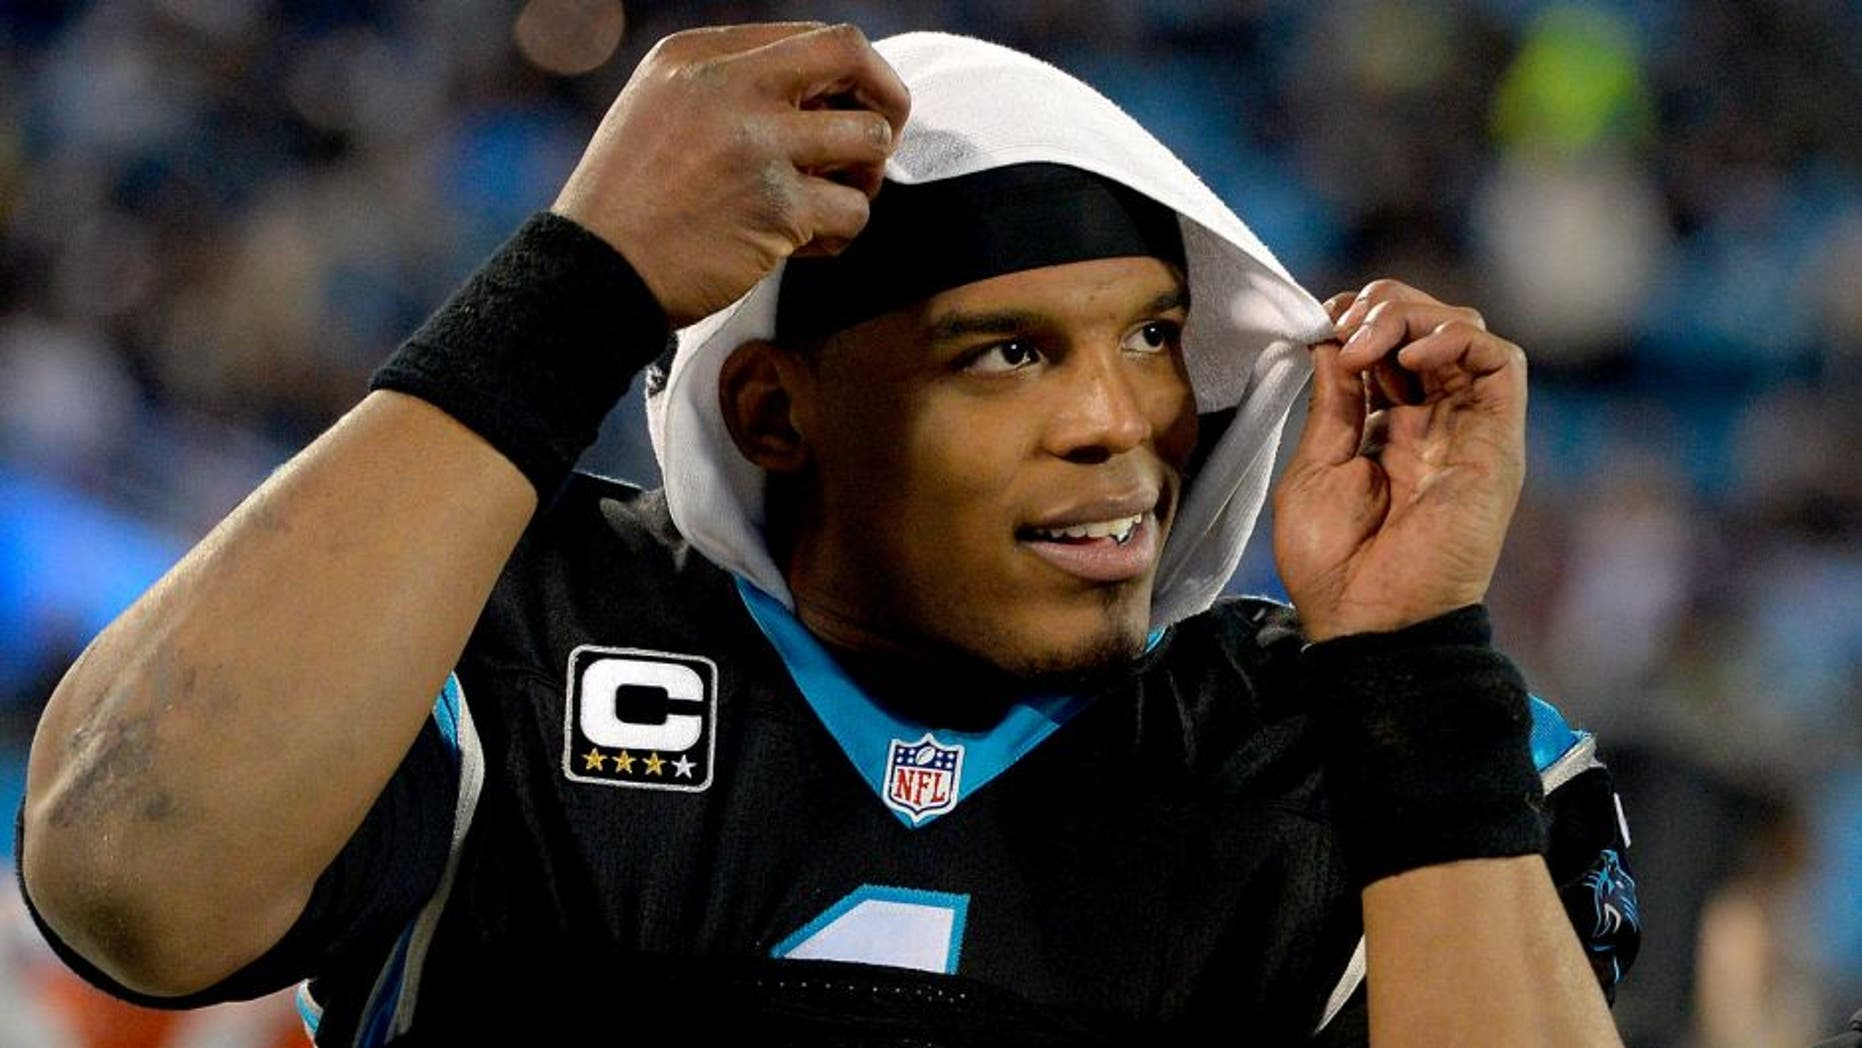 CHARLOTTE, NC - JANUARY 03: Cam Newton #1 of the Carolina Panthers watches from the sideline during the final minute of their game against the Tampa Bay Buccaneers at Bank of America Stadium on January 3, 2016 in Charlotte, North Carolina. The Panthers won 38-10 to clinch home field advantage for the playoffs. (Photo by Grant Halverson/Getty Images)